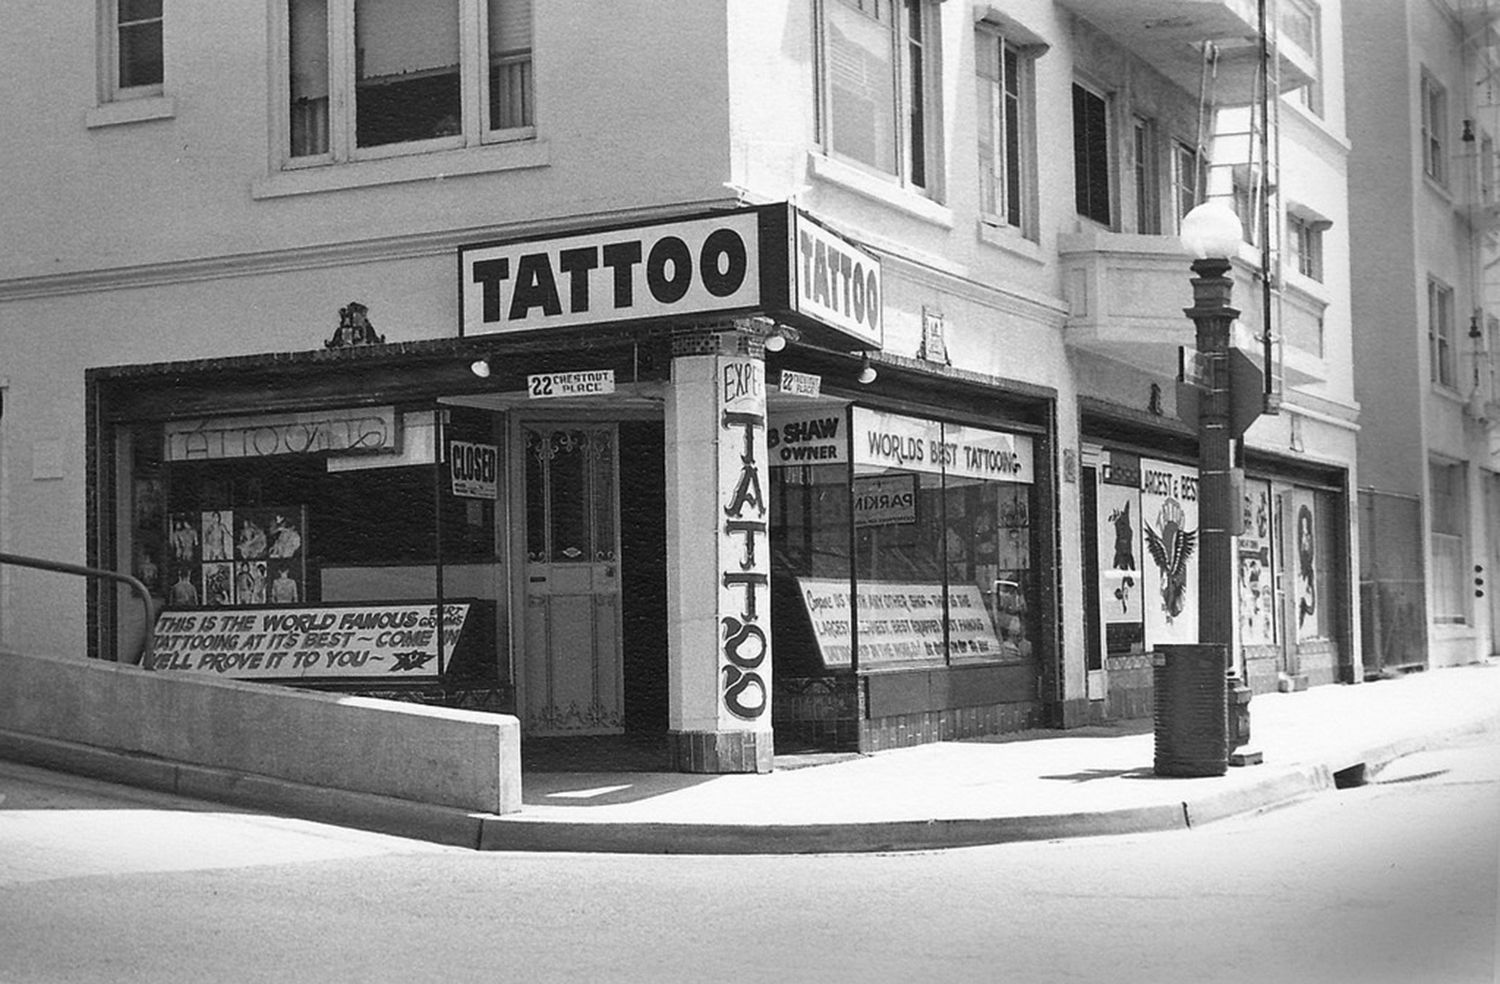 Outer Limits was purchased by Kari Barba in 2002 from the sons of tattoo artist, Bob Shaw, who was the nephew of the famous Bert Grimm.